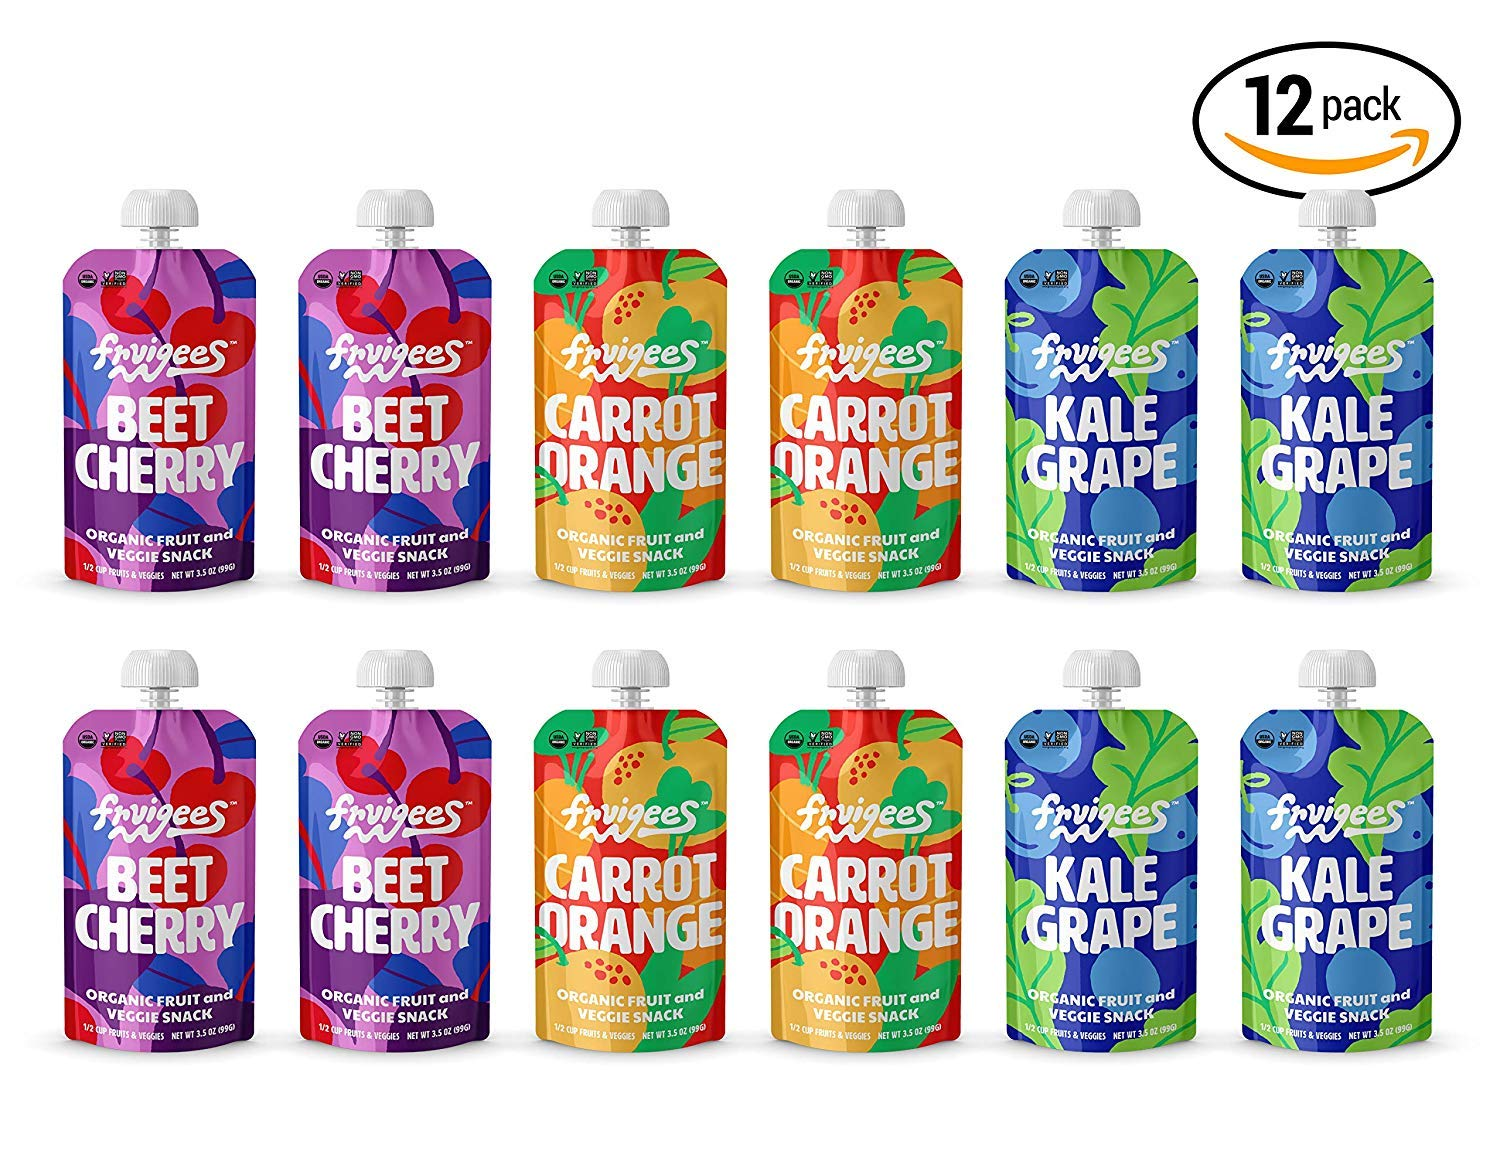 Fruigees Superfood Smoother than a Smoothie Squeeze Snack Pouches | Organic • Non-GMO • Kosher • Vegan • Gluten Free | Made from 100% Fruit & Veggie Juice | 12 ct Variety Pack …